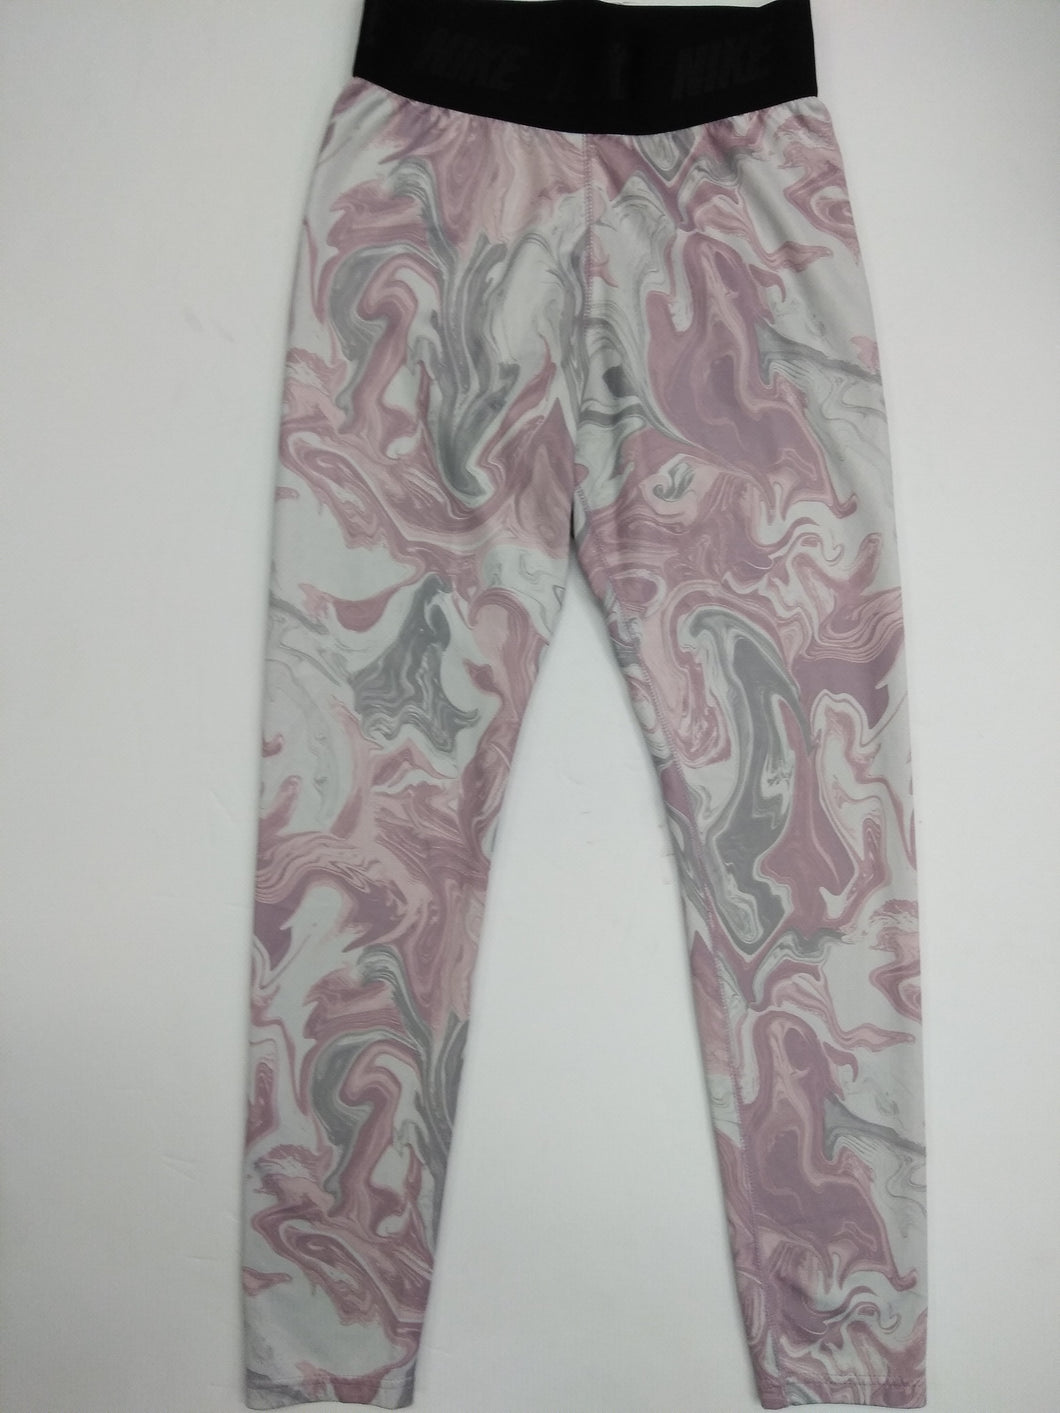 Nike Womens Athletic Pants Size Small